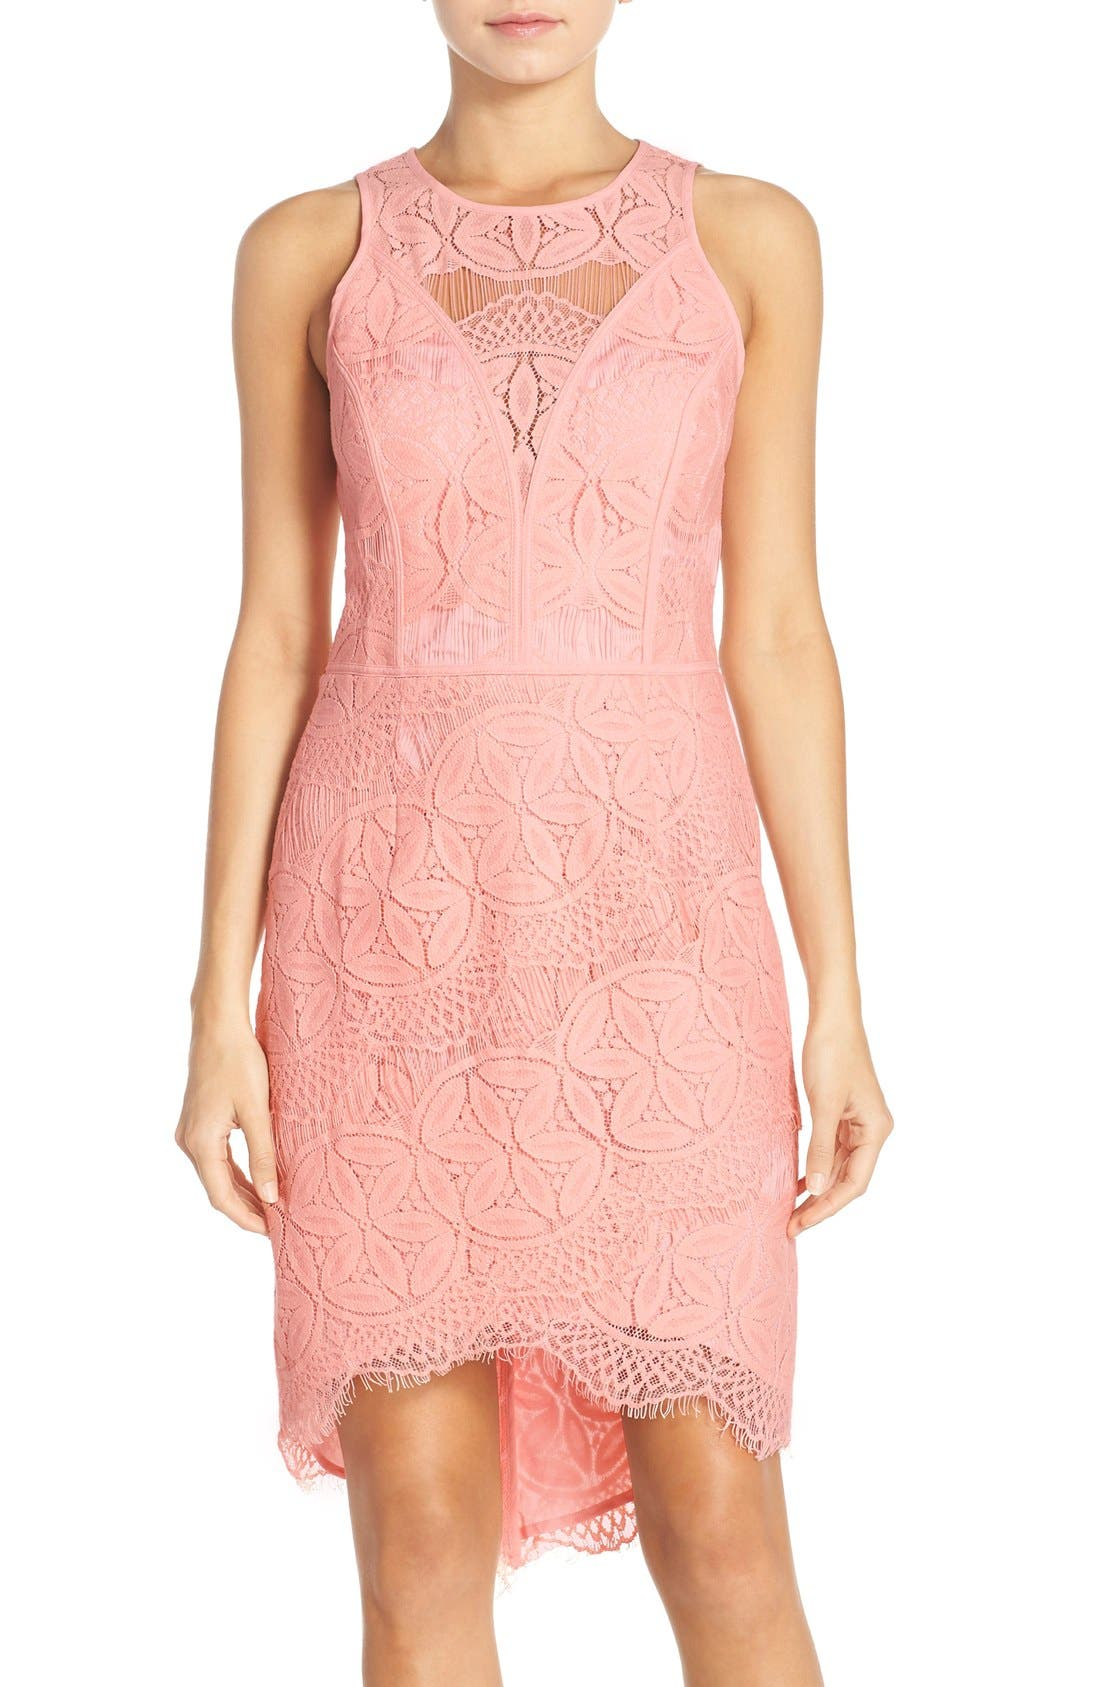 Alternate Image 1 Selected - Adelyn Rae Lace High/Low Sheath Dress